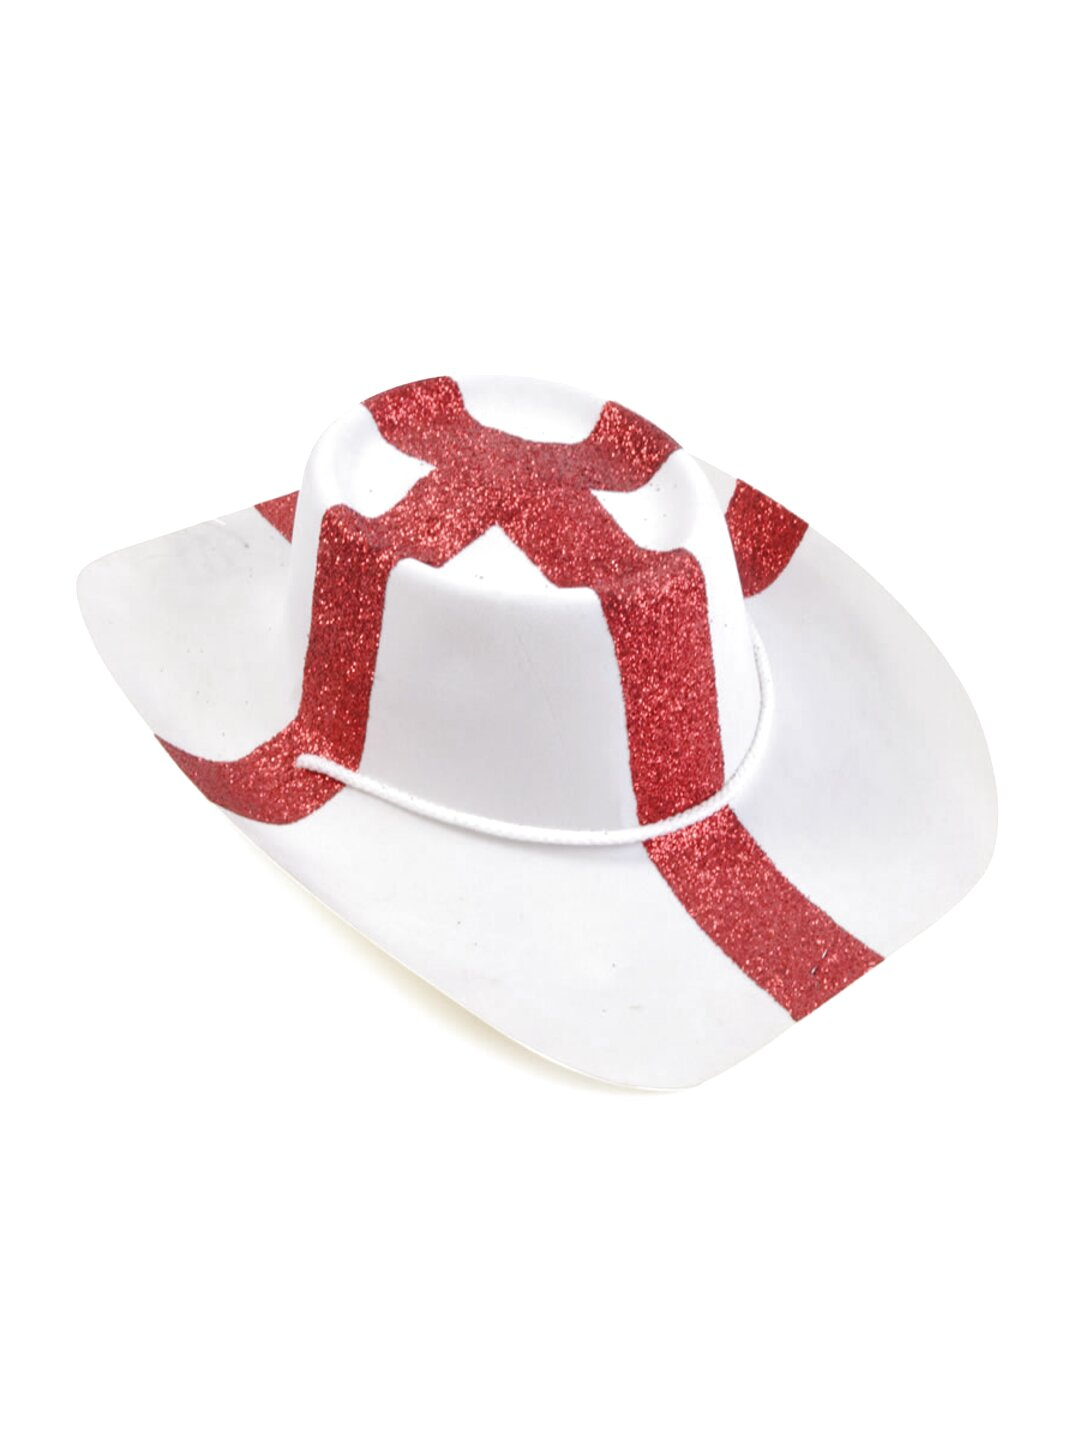 PACK OF 12 ST GEORGE PLASTIC BOWLER HATS ENGLAND FLAG RUGBY SPORT FANCY DRESS